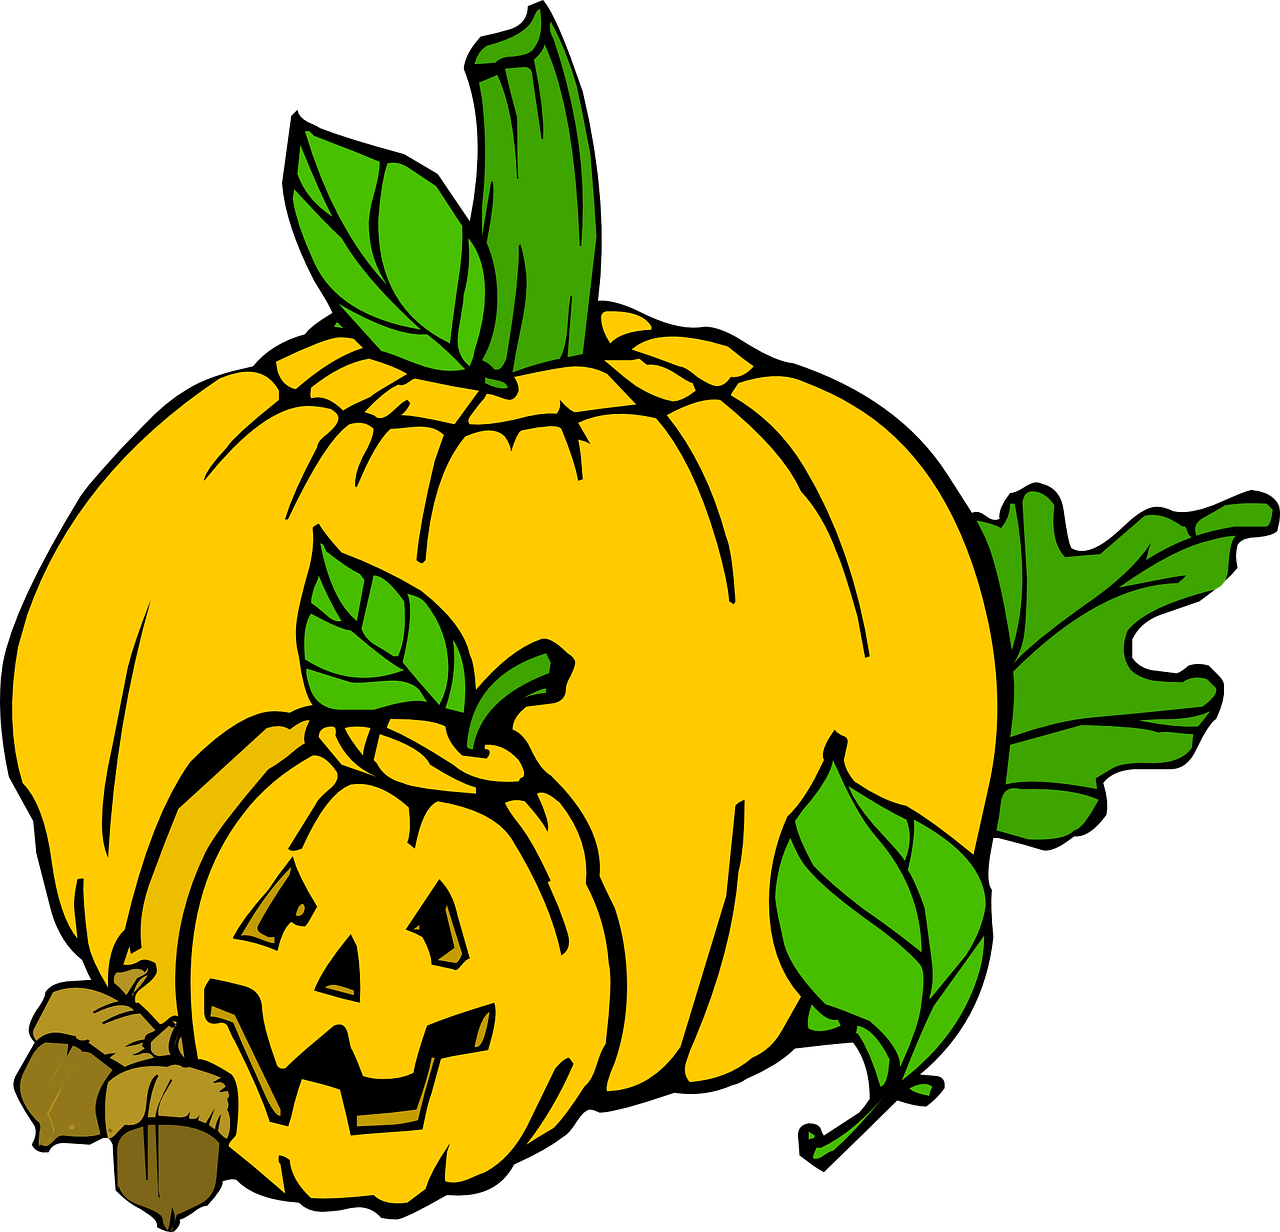 Pumpkins vector pumkin. Halloween colour recreation holiday